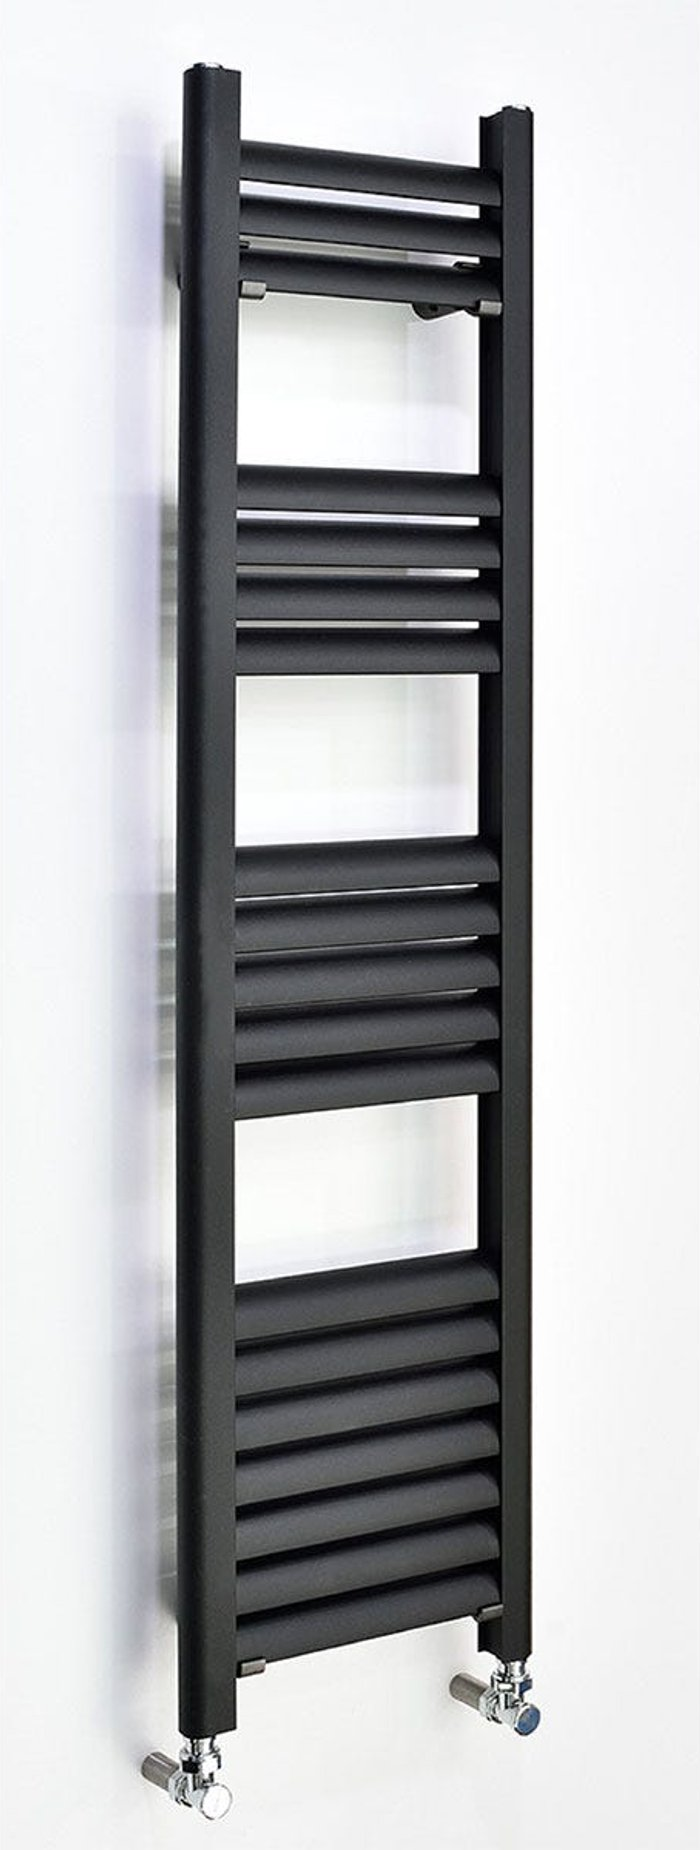 Towelrads Towelrads Accuro Korle Champagne 1200mm x 300mm Aluminium T/Warmer - Anthracite